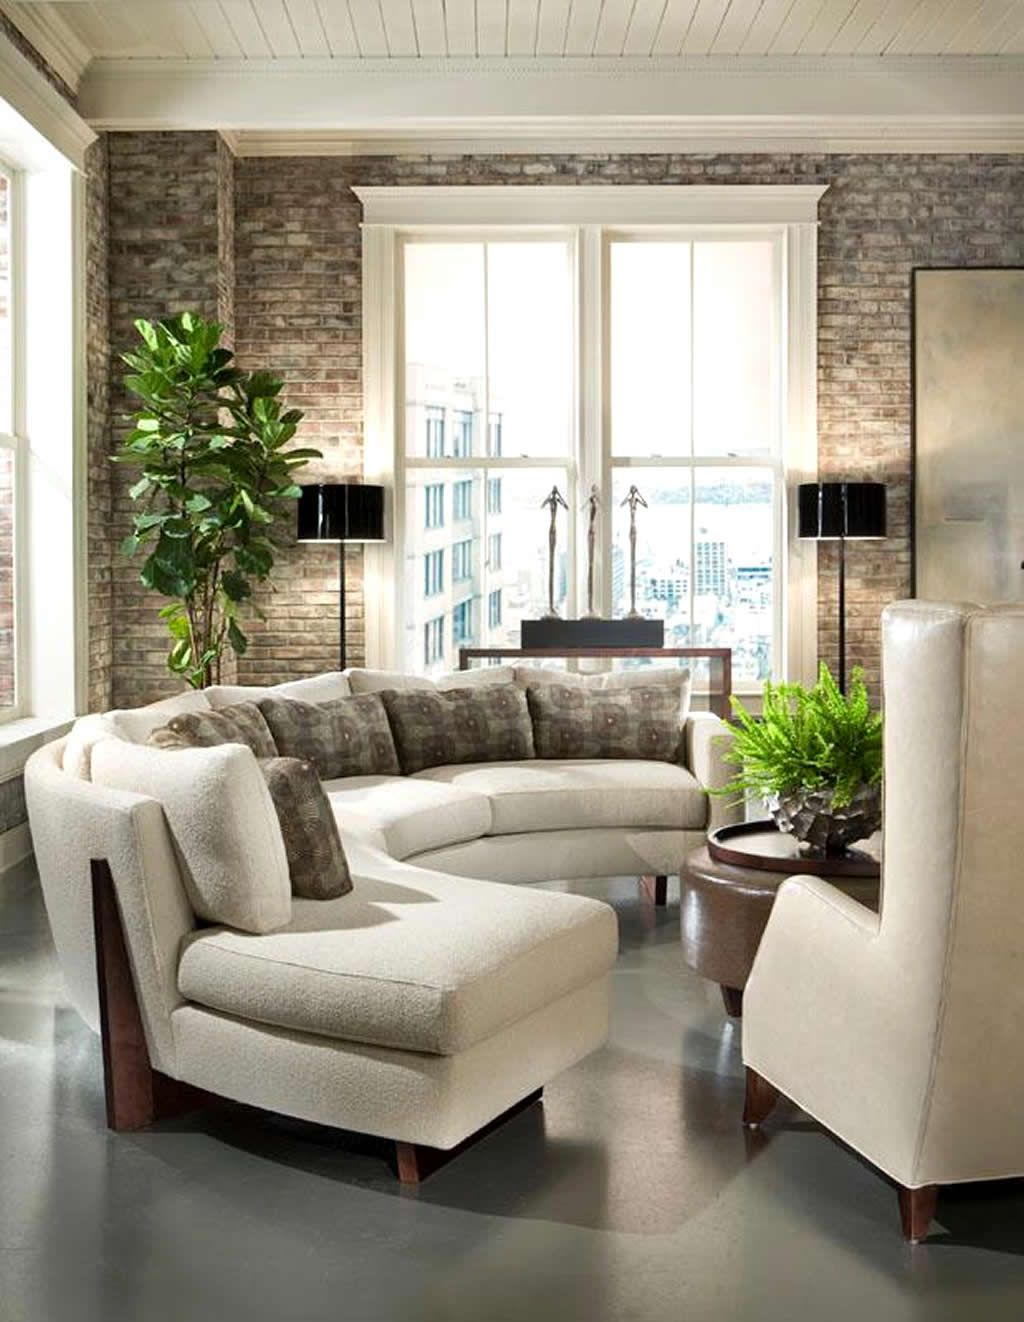 When You Seek Furniture Information, This Article Is It